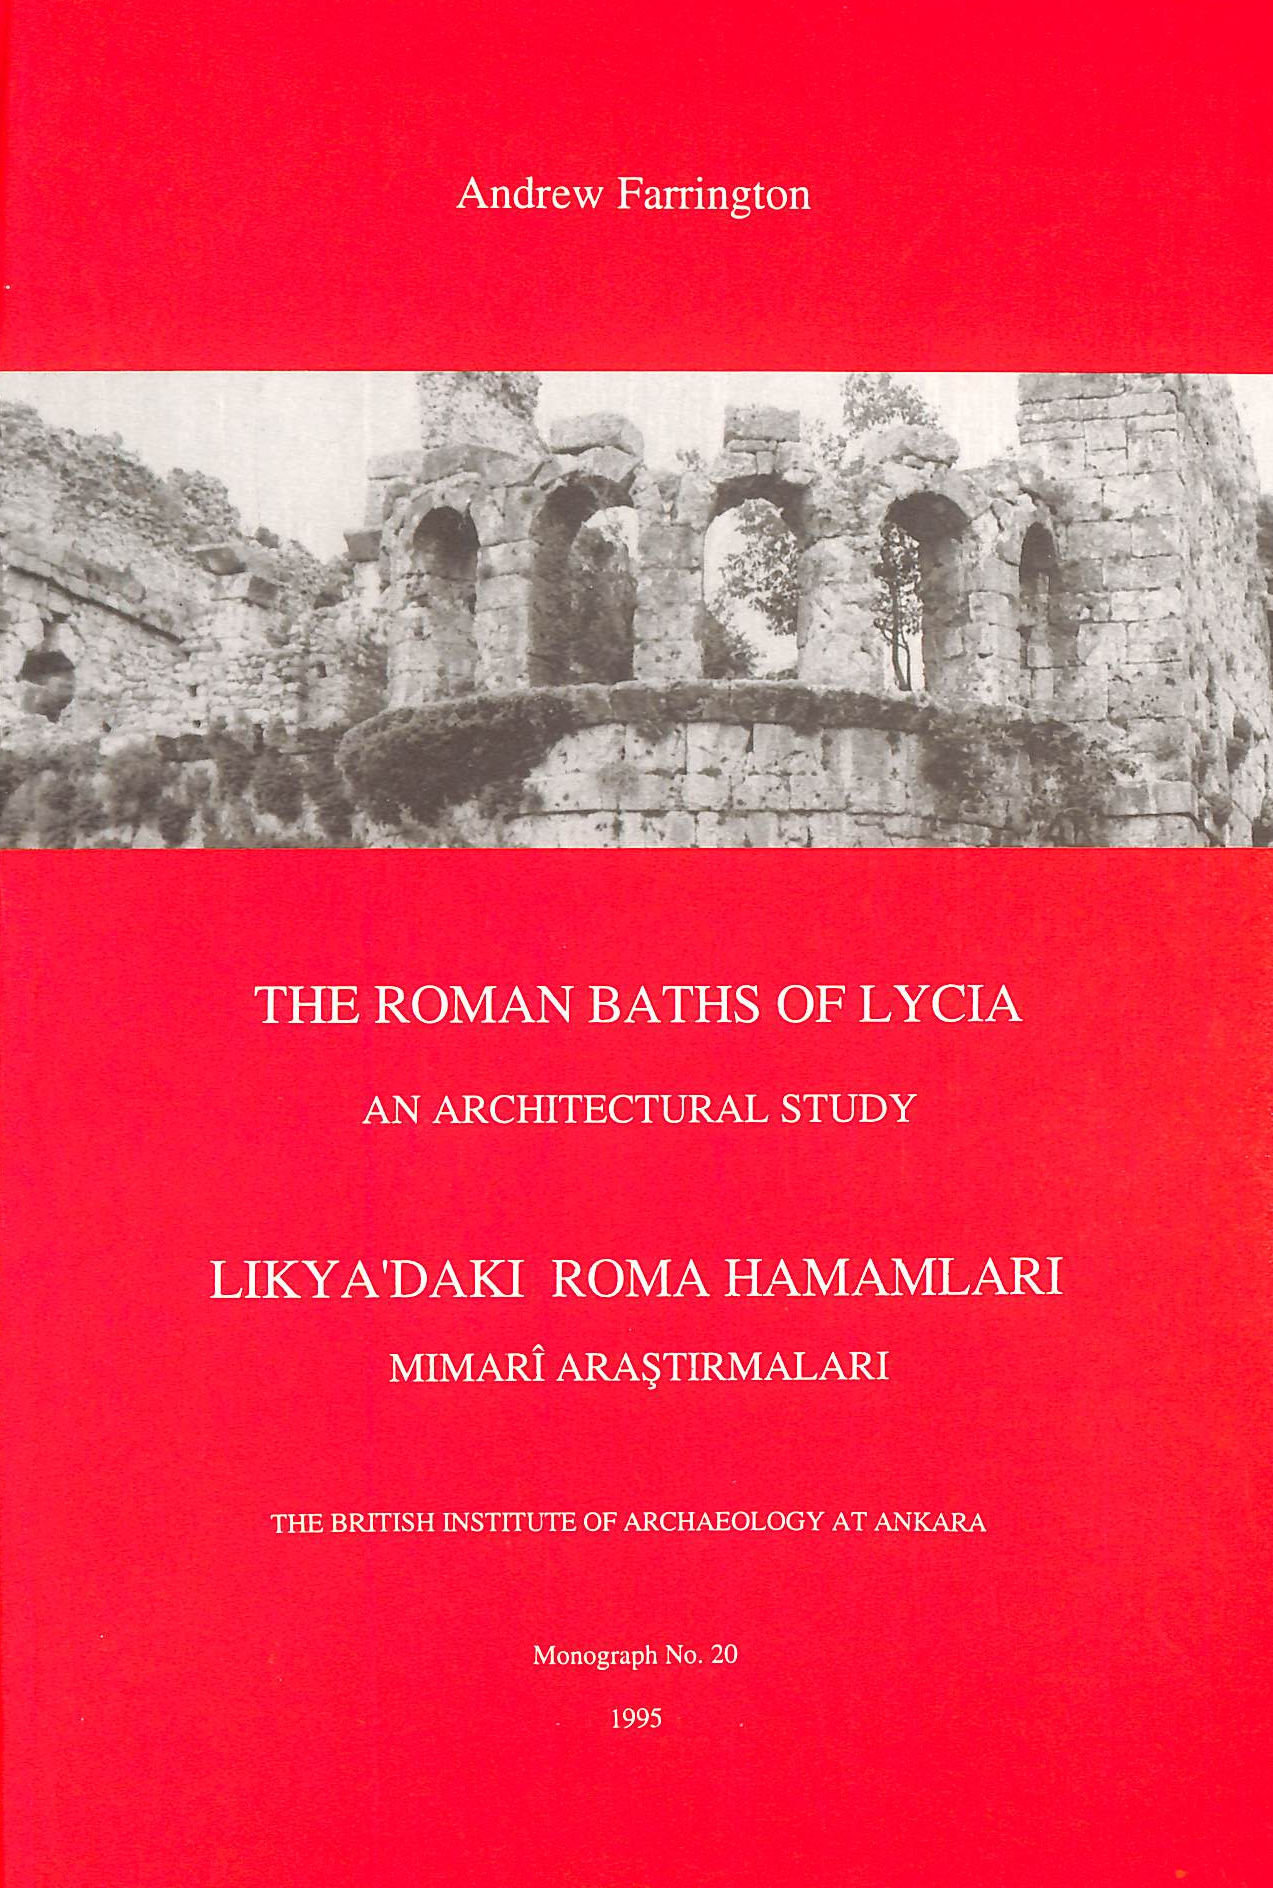 Image for The Roman Baths of Lycia: An Architectural Study